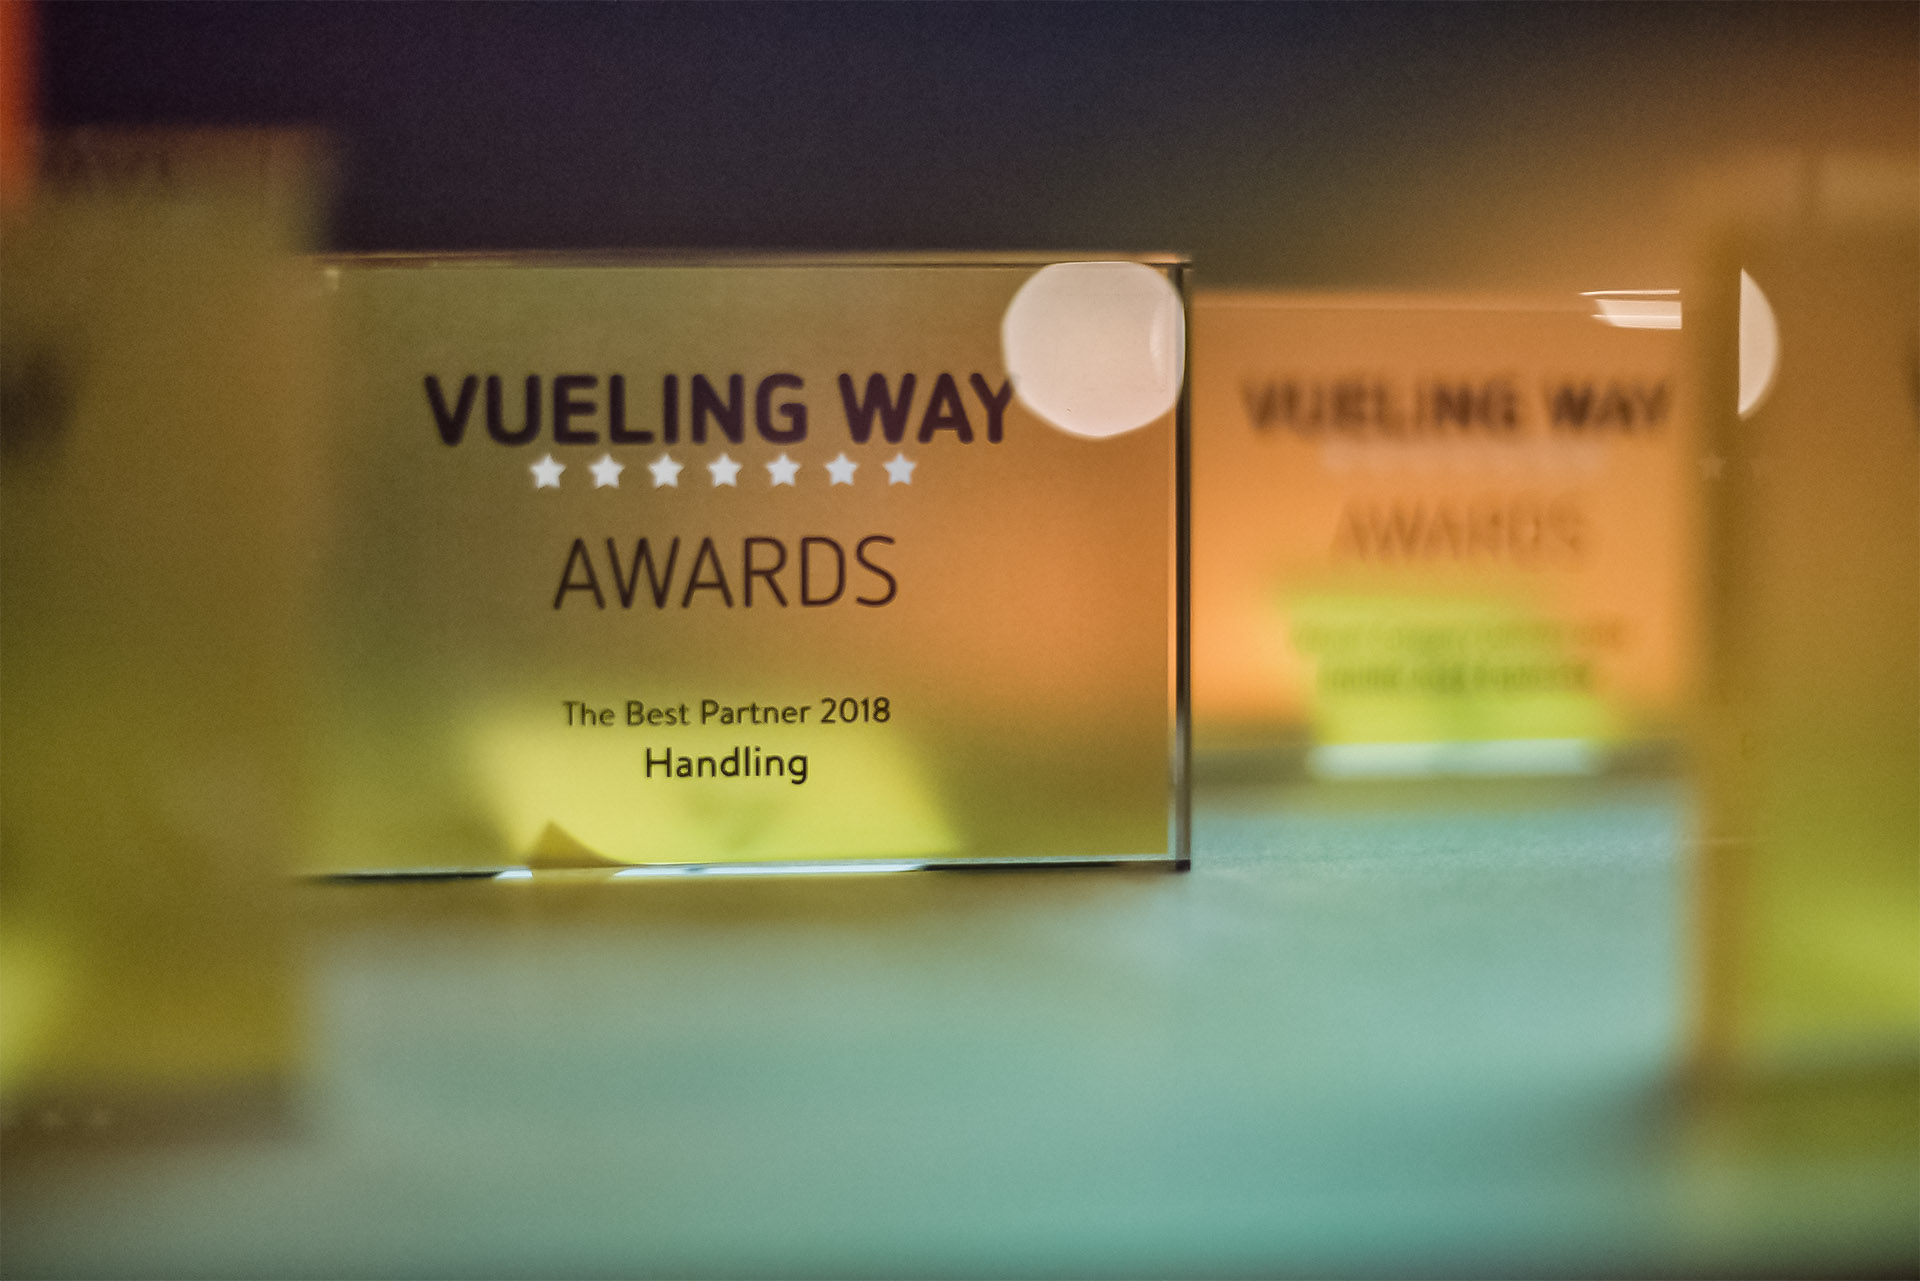 Vueling Way Awards